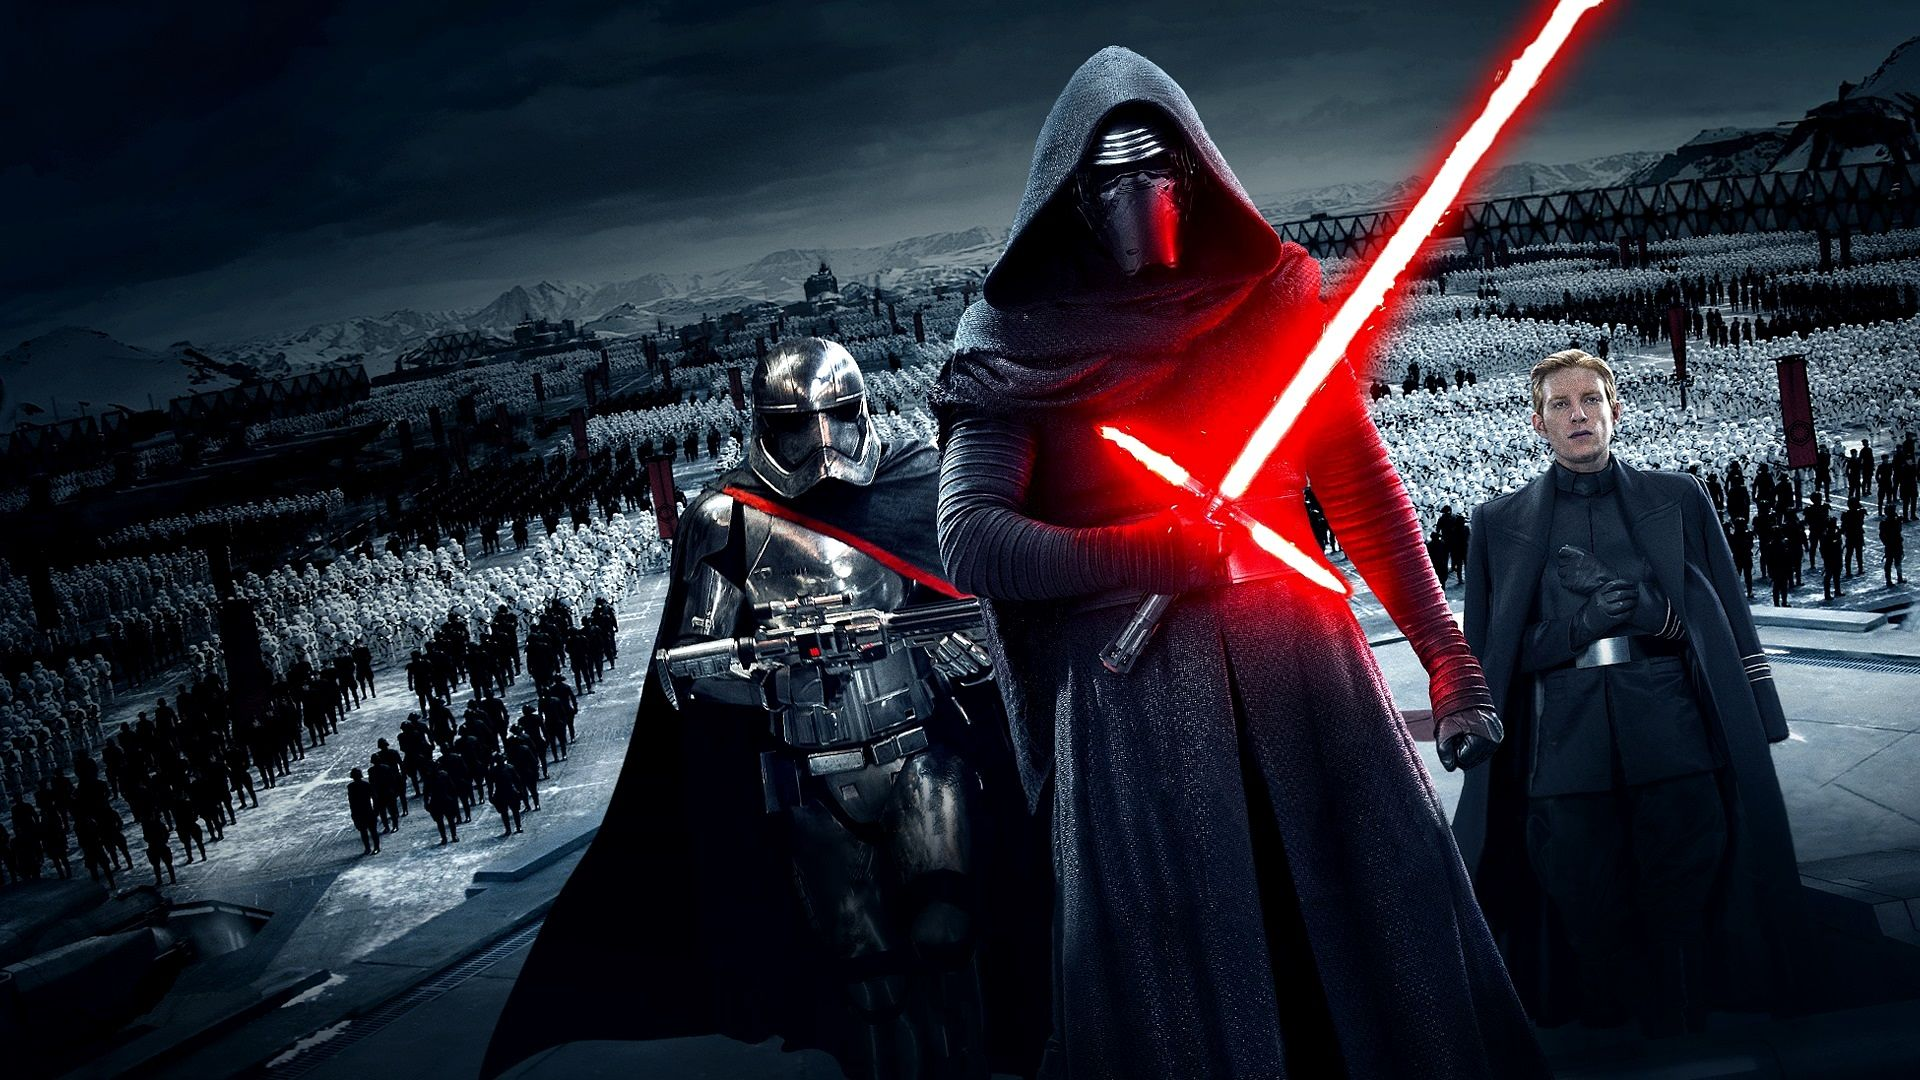 wars 7 the force awakens could kylo ren really be a skywalker 3598864 1920x1080